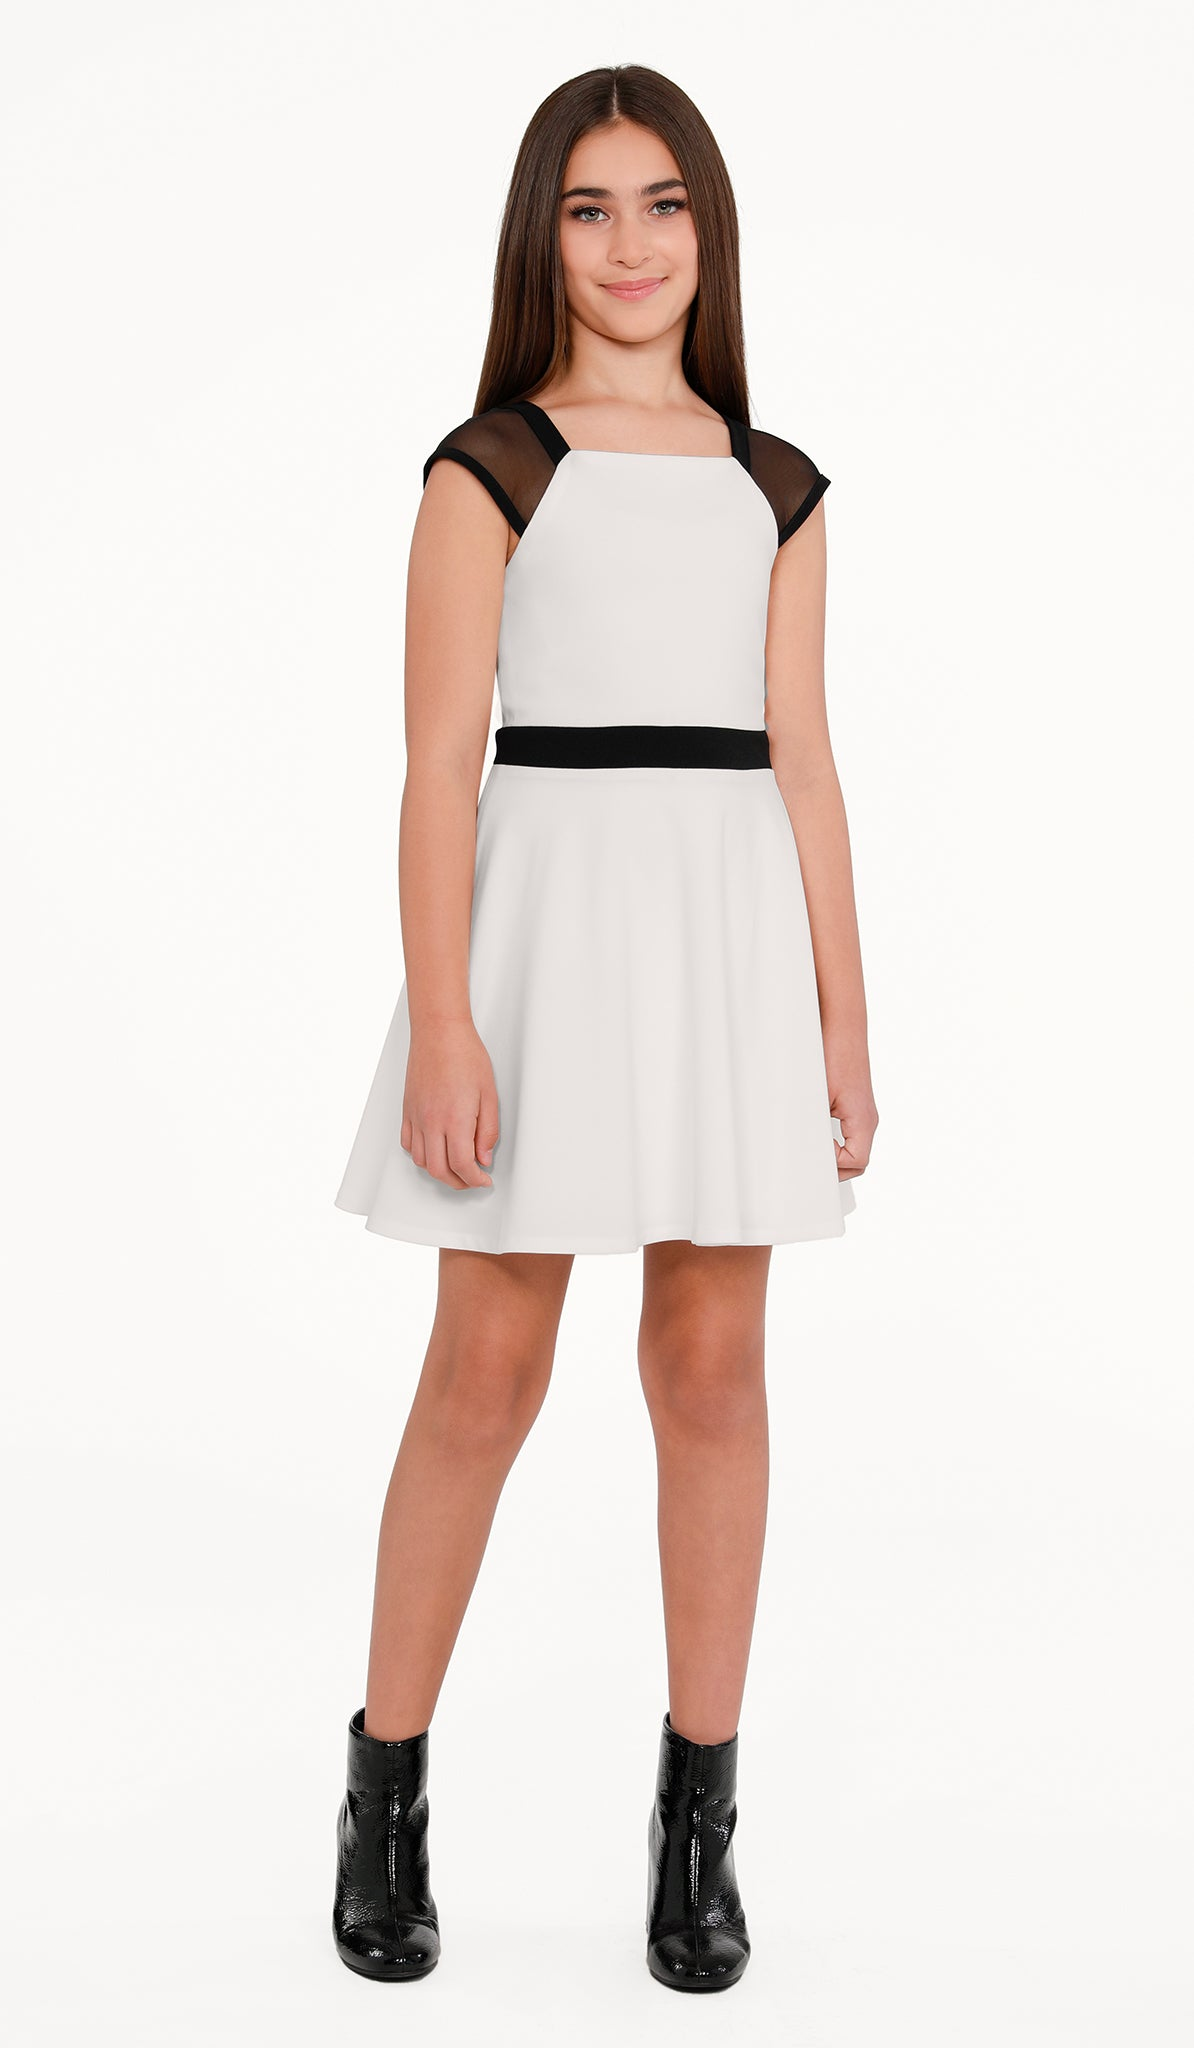 THE YORK DRESS - Sallymiller.com - [variant title] - | Event & Party Dresses for Tween Girls & Juniors | Weddings Dresses, Bat Mitzvah Dresses, Sweet Sixteen Dresses, Graduation Dresses, Birthday Party Dresses, Bar Mitzvah Dresses, Cotillion Dresses